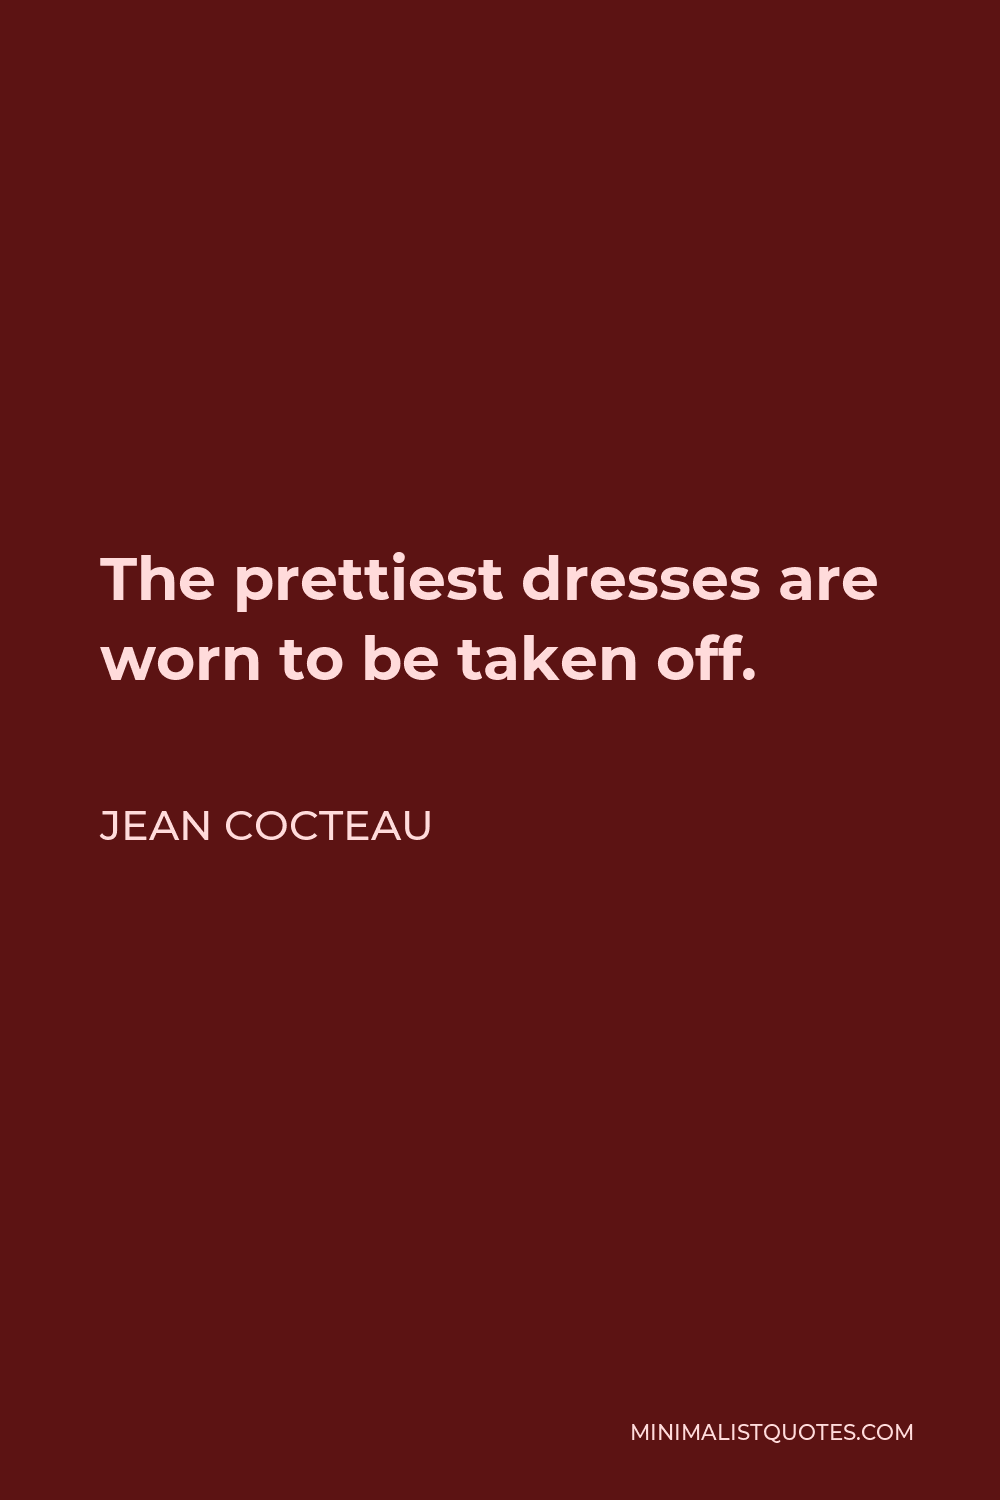 Jean Cocteau Quote - The prettiest dresses are worn to be taken off.